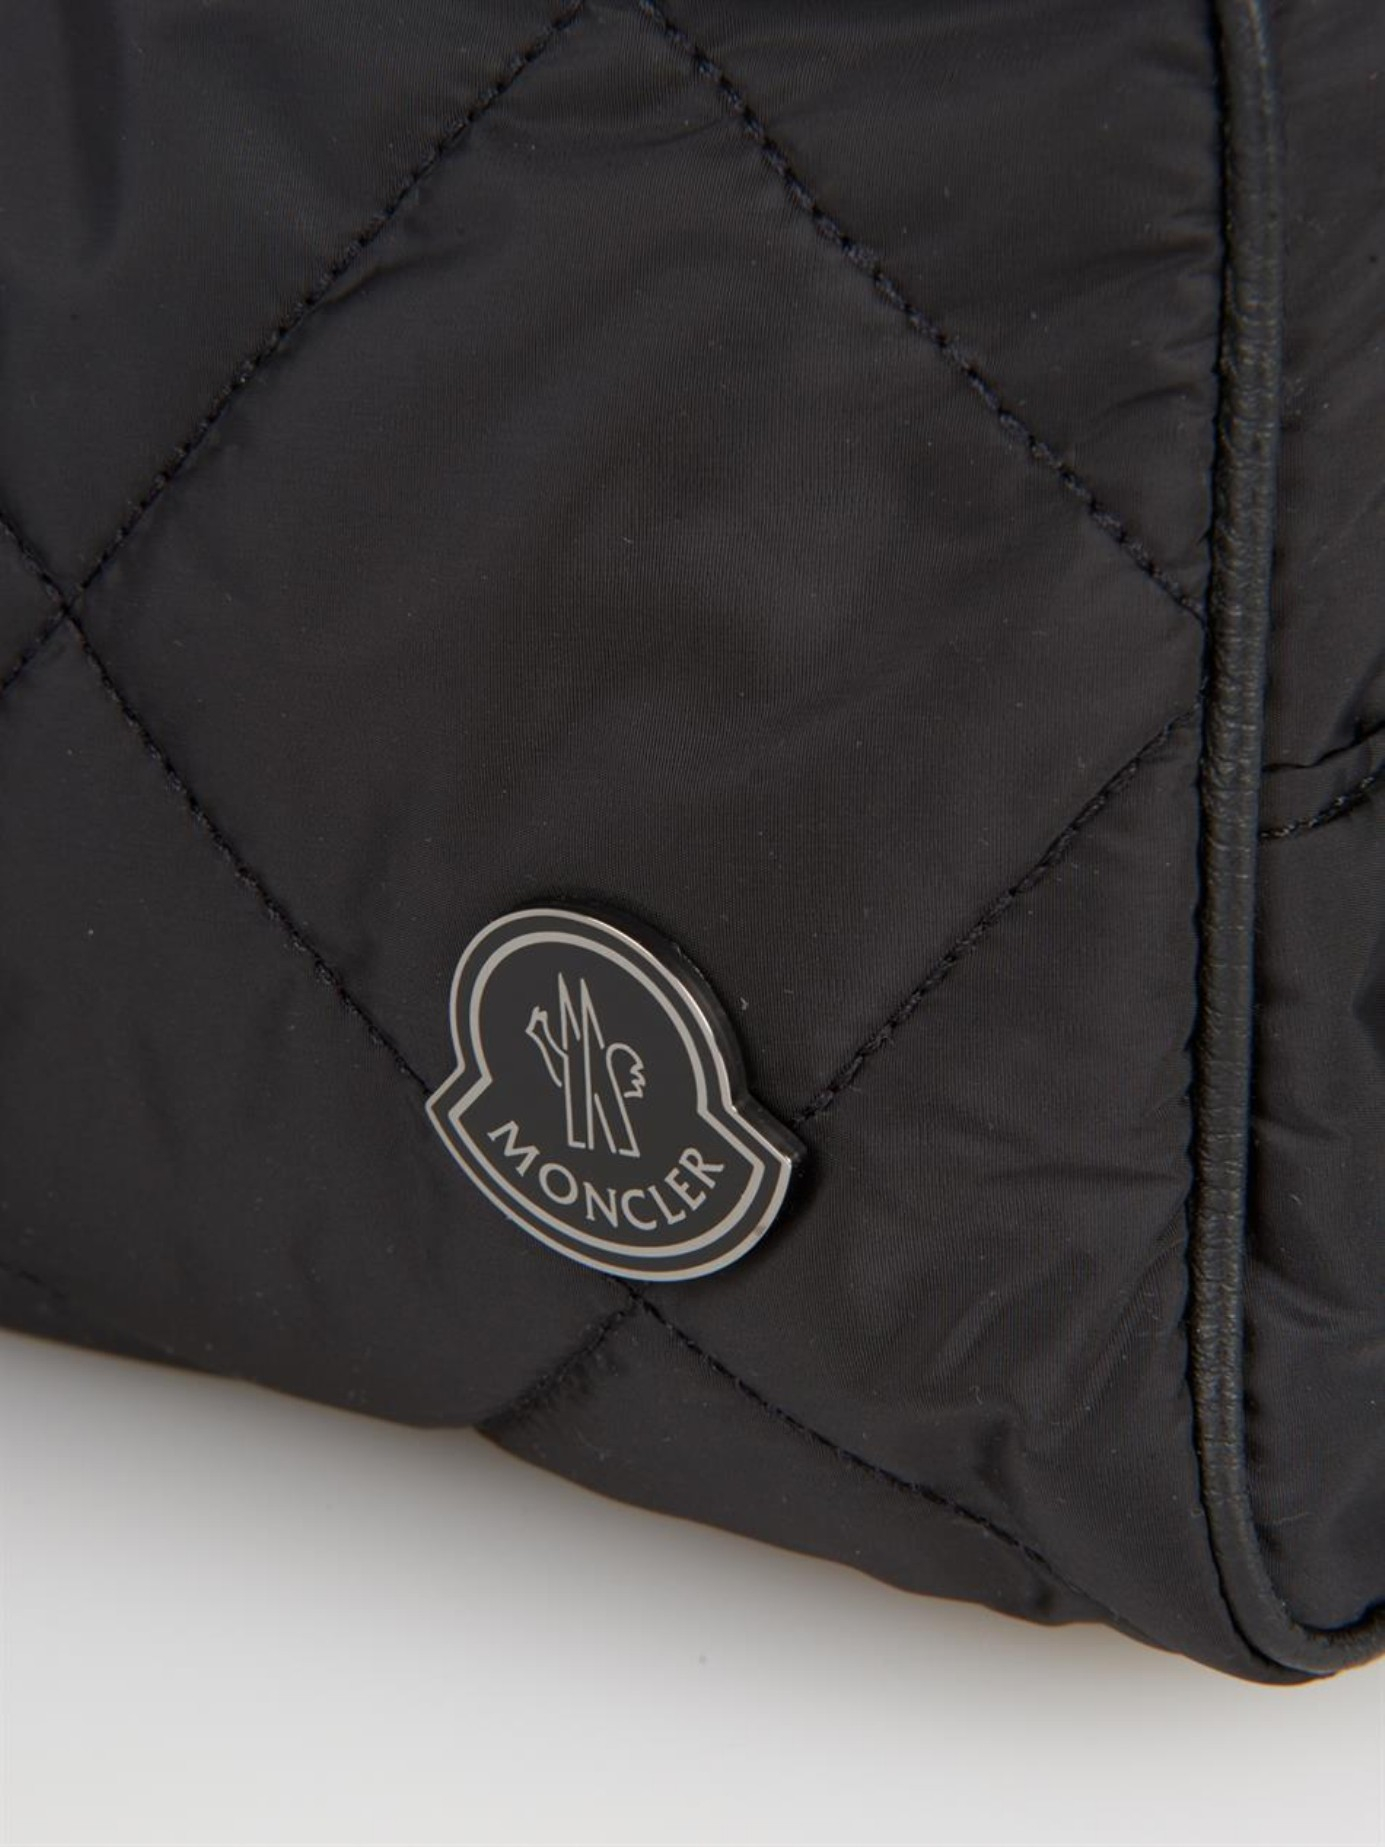 Moncler Quilted Nylon Washbag in Black for Men - Lyst 14cd6a09ed1e5